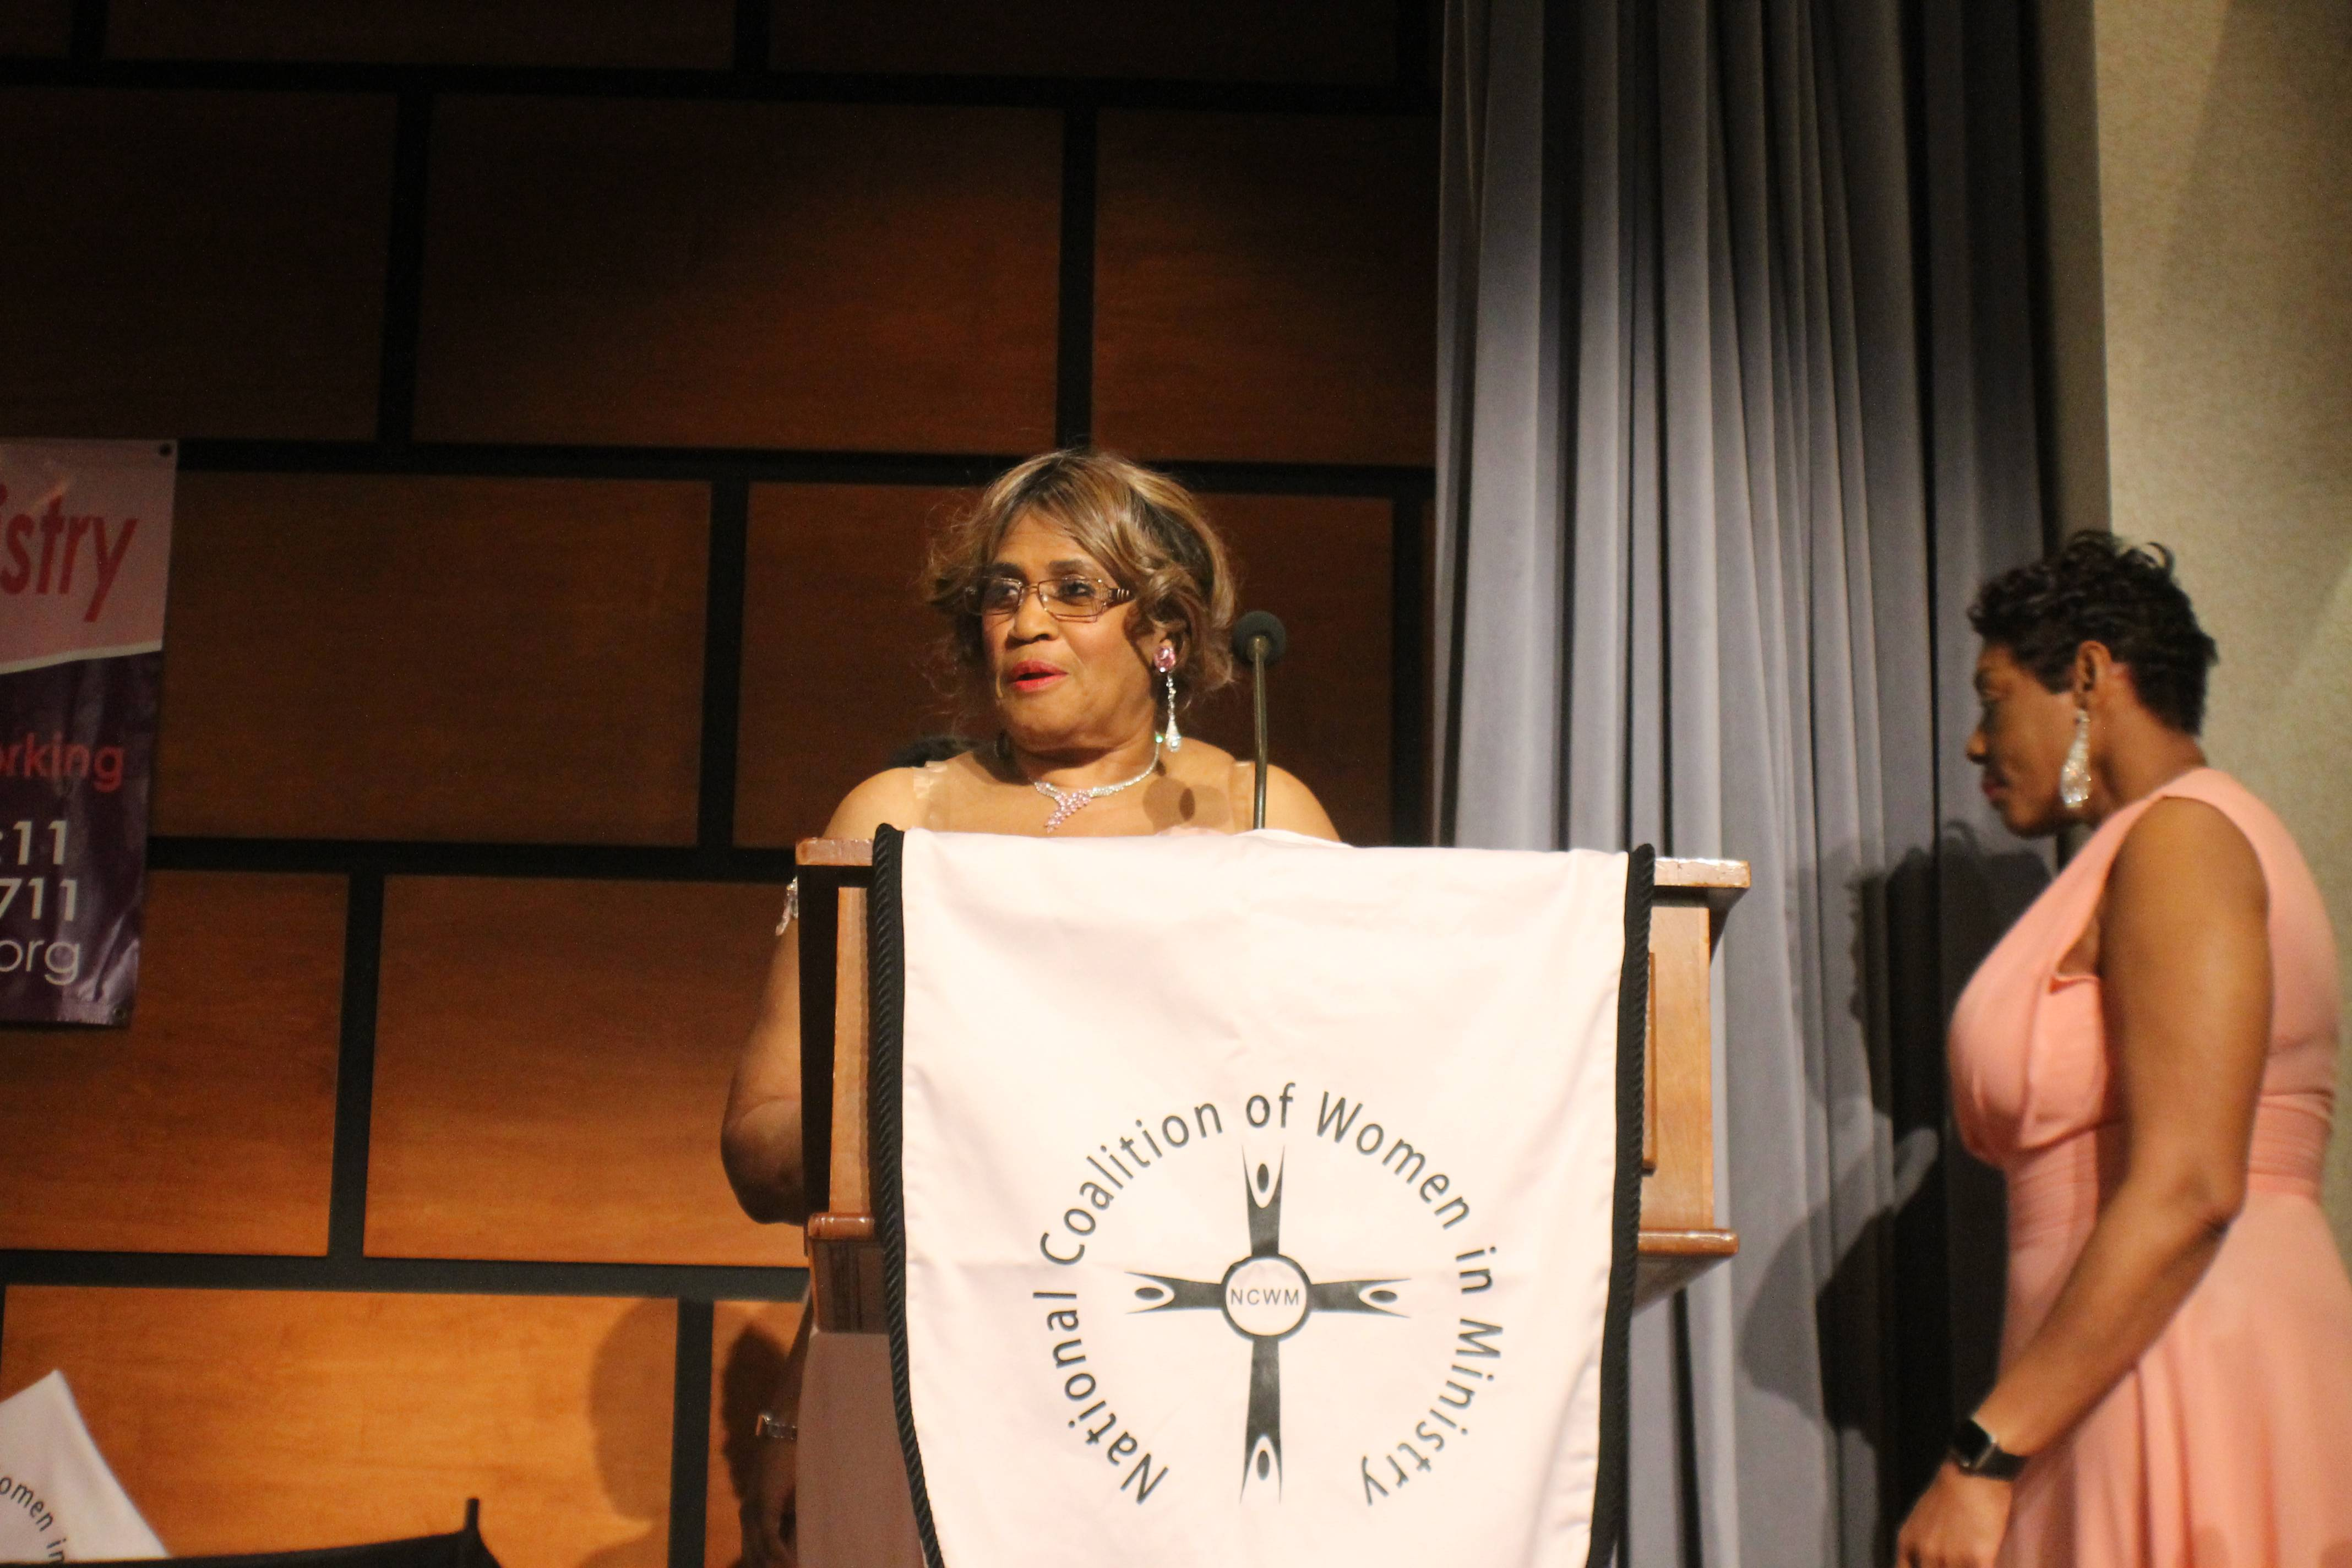 First Lady Judy Shipp, Mother of NCWM